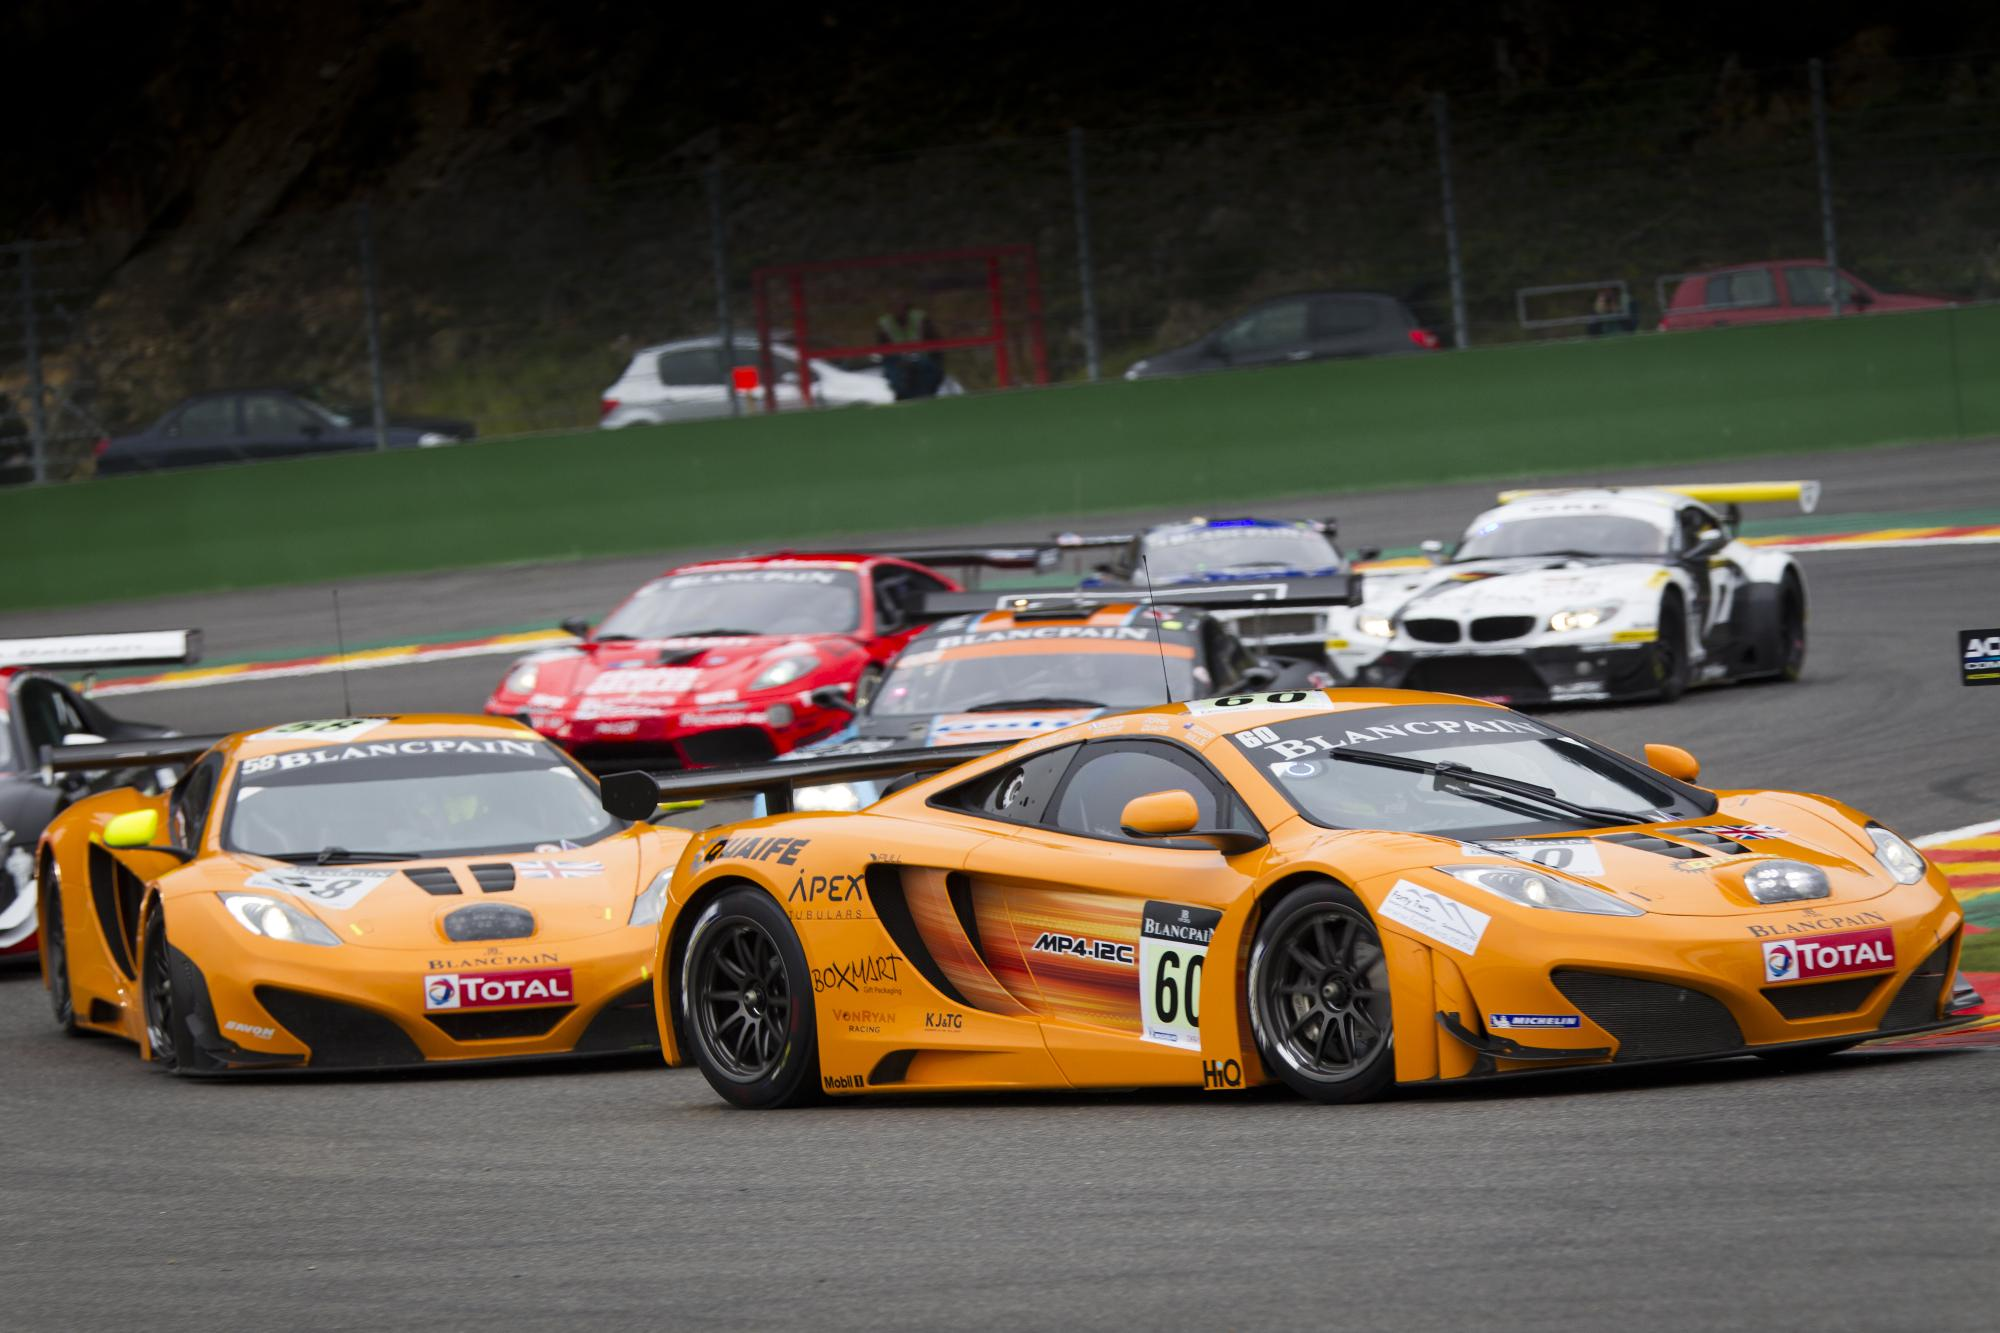 https://s1.cdn.autoevolution.com/images/news/debut-24-hour-race-at-spa-for-mp4-12c-gt3-proves-the-cars-worth-37592_1.jpg